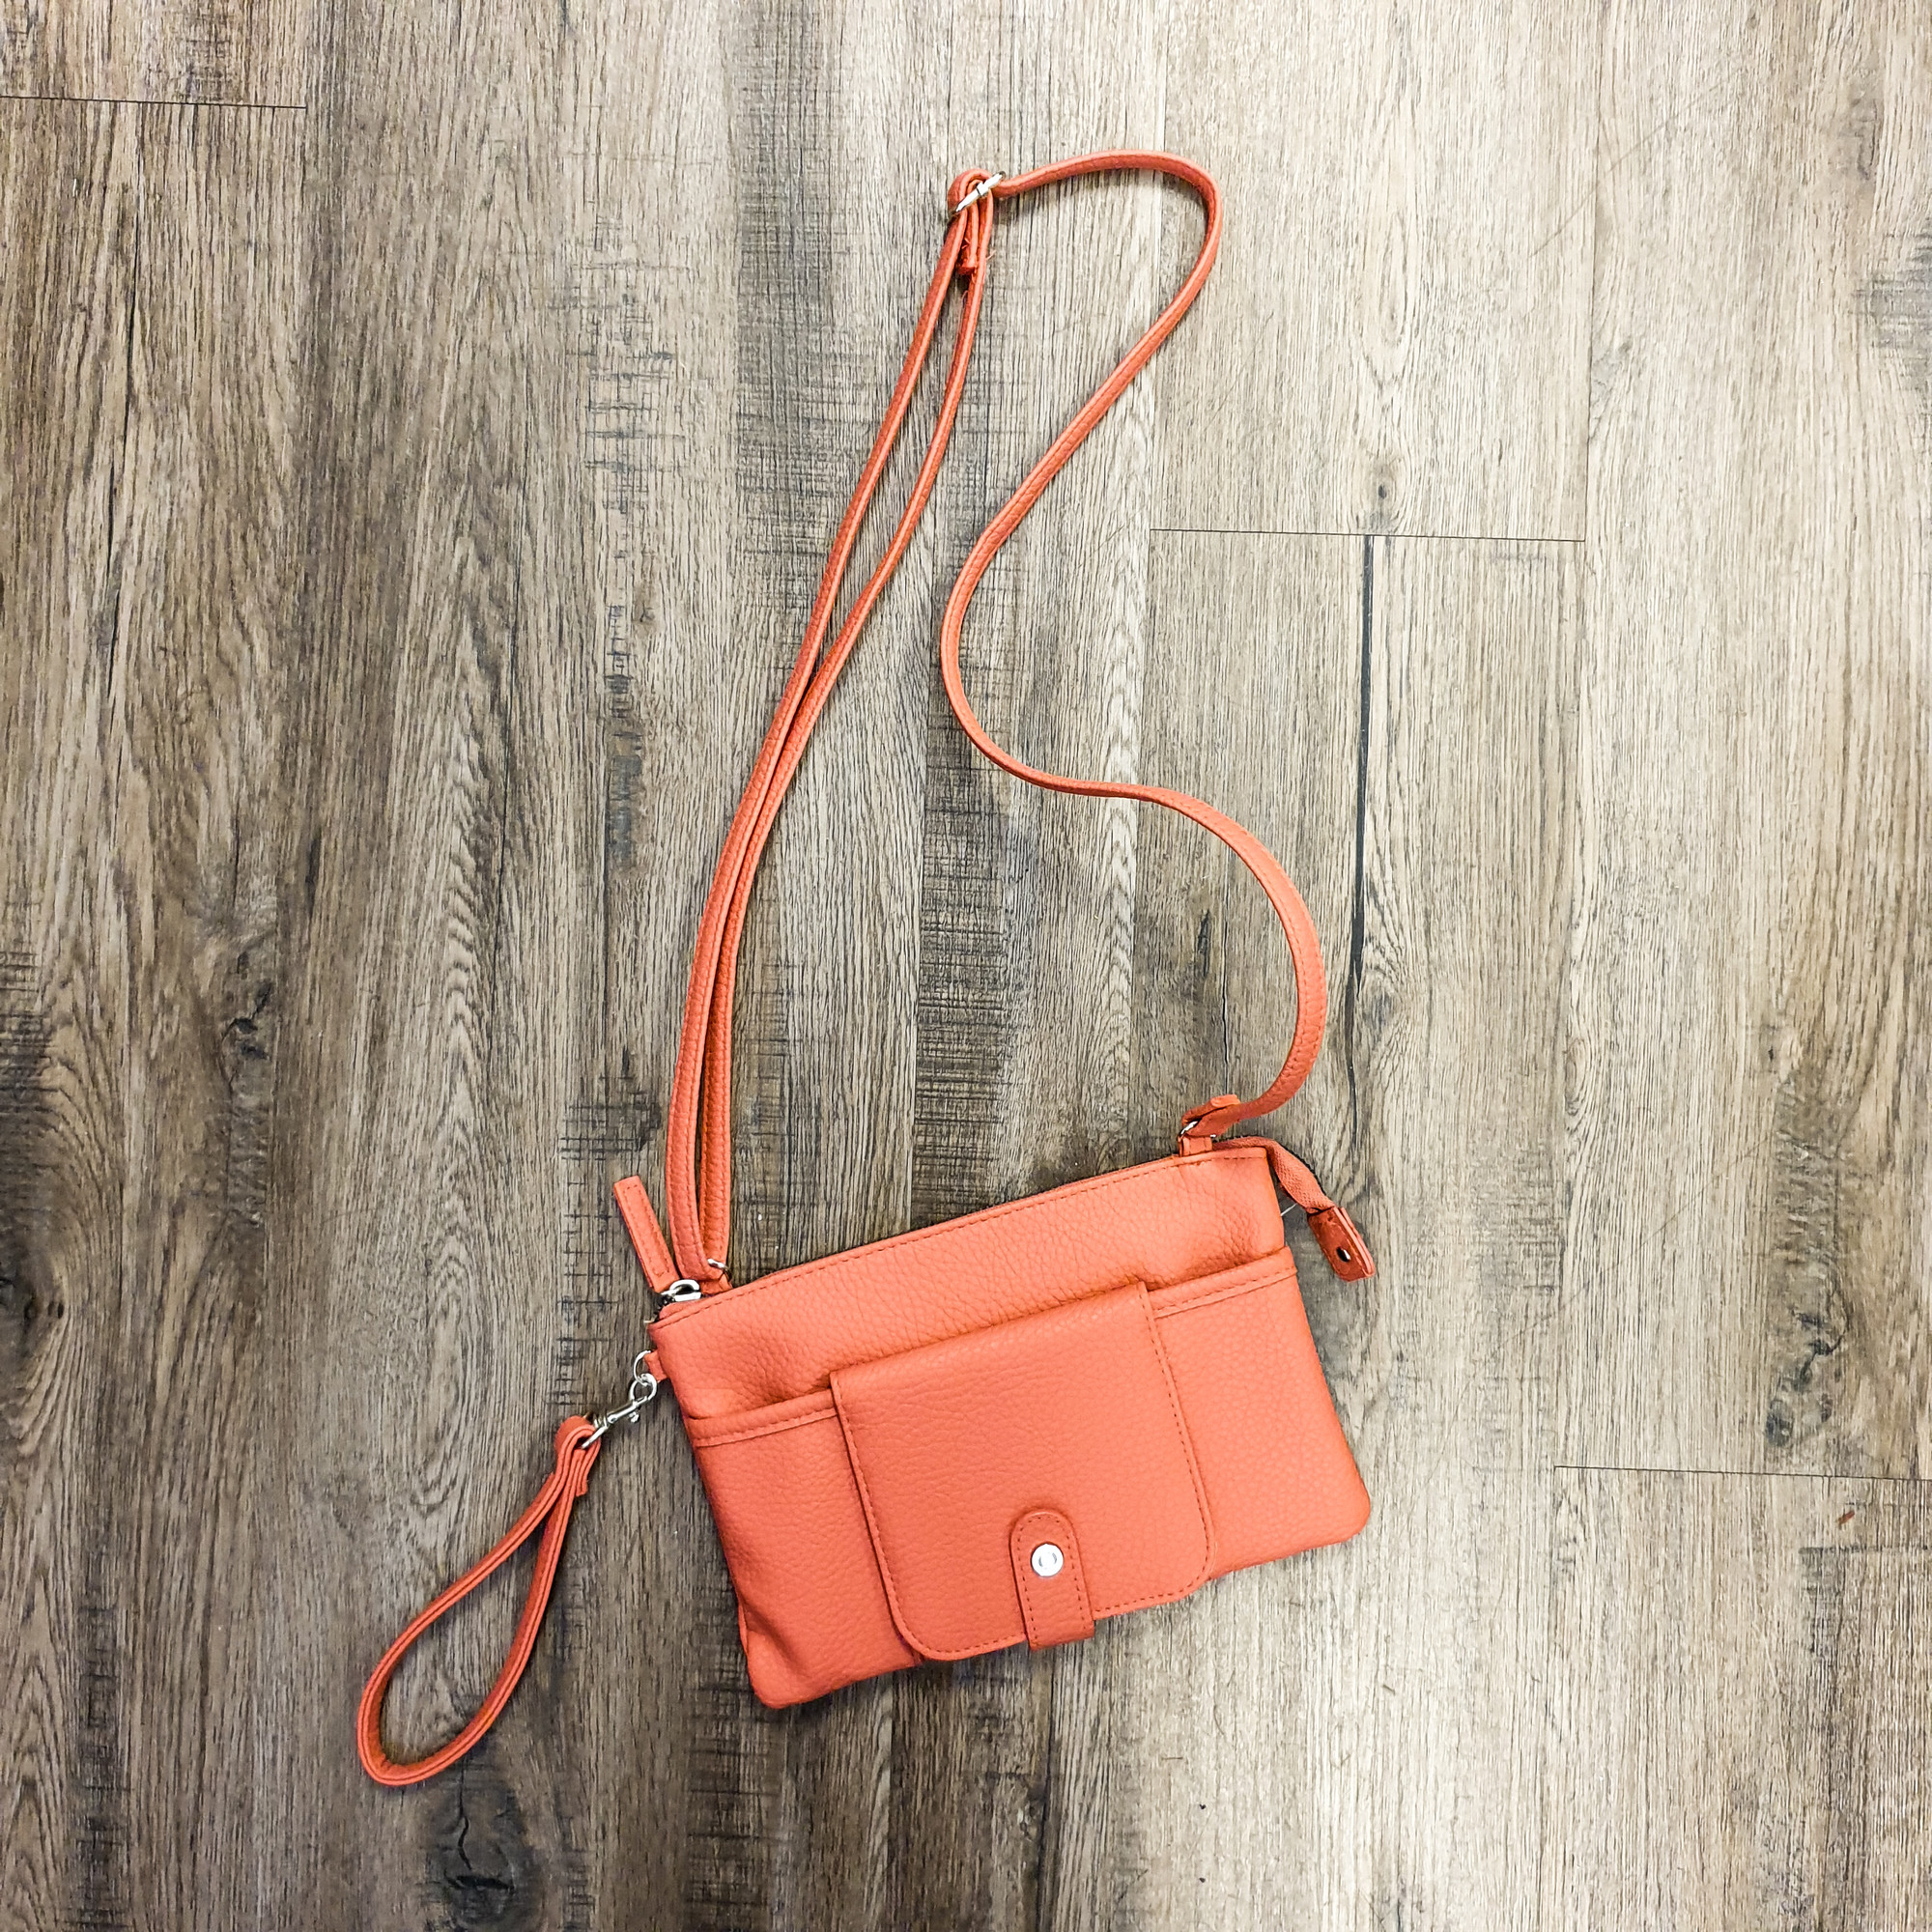 Beautiful Crossbody.<br /> - Coral color<br /> - Zip-top closure<br /> - Front slip pocket with ID window, two card slips and one zip pocket<br /> - Adjustable shoulder strap with 25 in. drop<br /> - Removable wristlet<br /> - Interior features: one slip pocket<br /> - W: 8.5 in. H: 6 in. D: 1 in.<br /> <br /> * Please note that these measurements and pictures are for reference only and may vary slightly from the original.